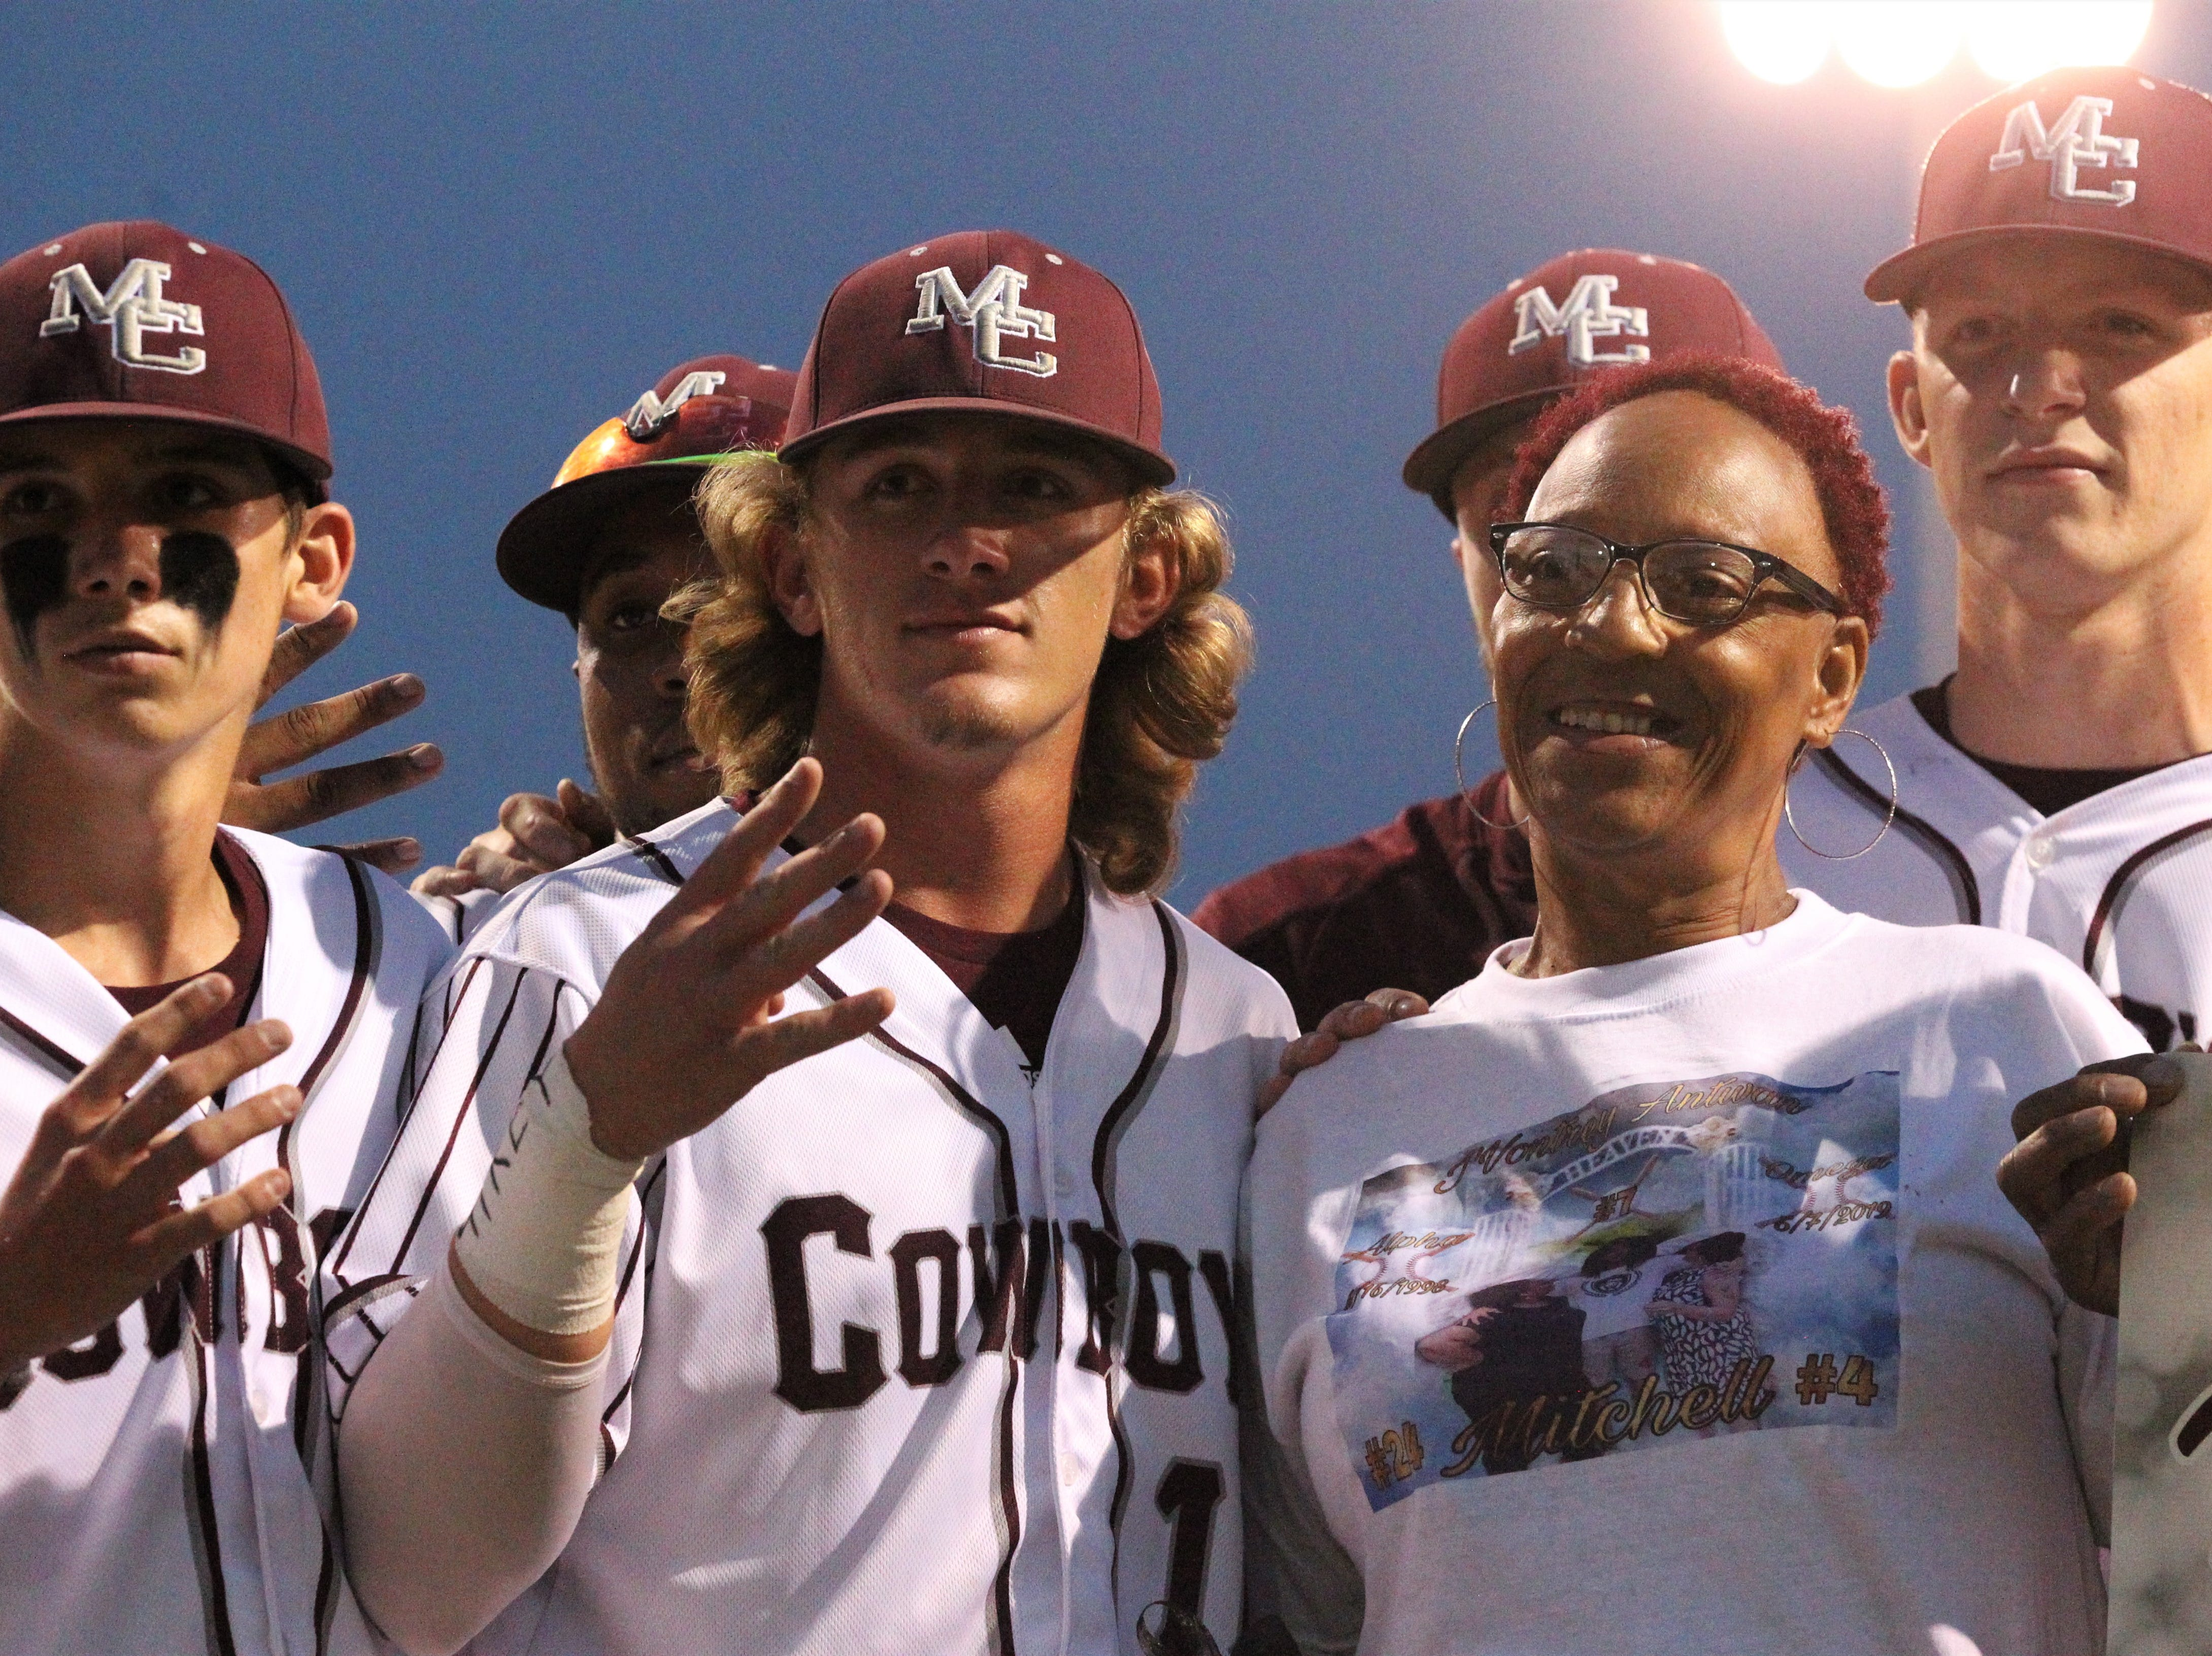 Madison County beat Union County 1-0 during a Region 2-1A semifinal on May 14, 2019. The Cowboys played for former player Trey Mitchell, who died in a drowning accident last week.